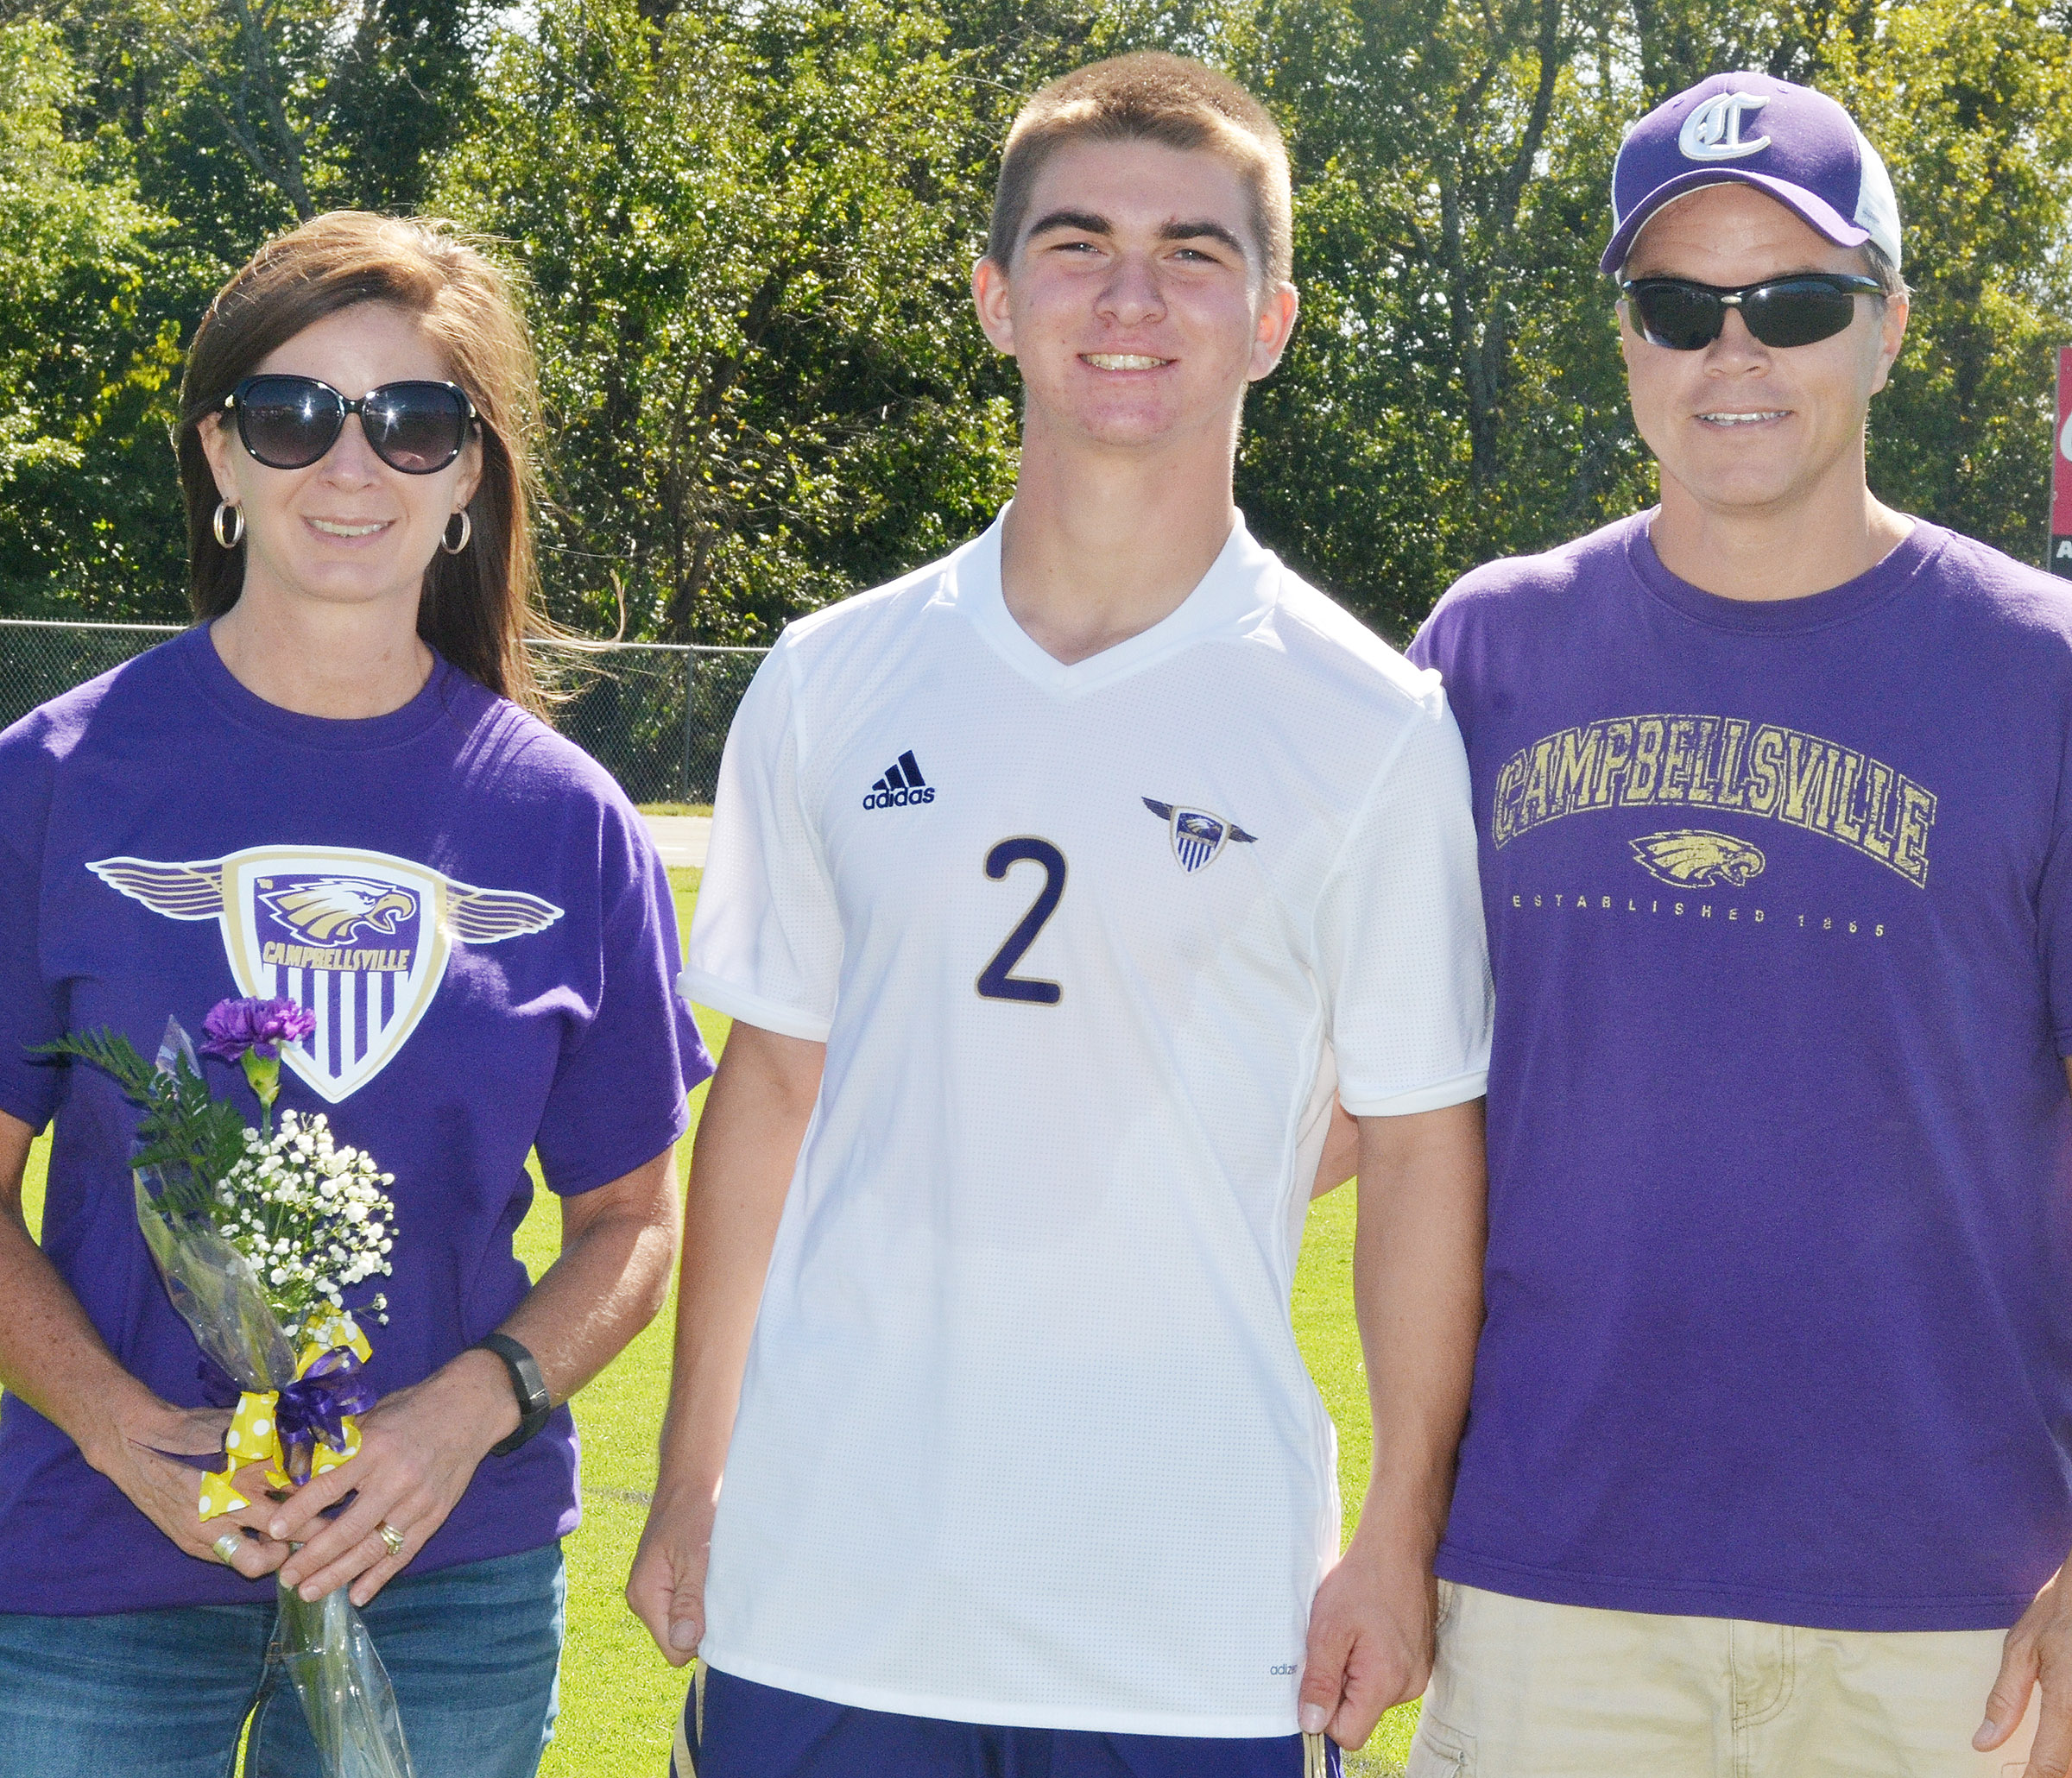 CHS senior soccer player Cass Kidwell is honored.